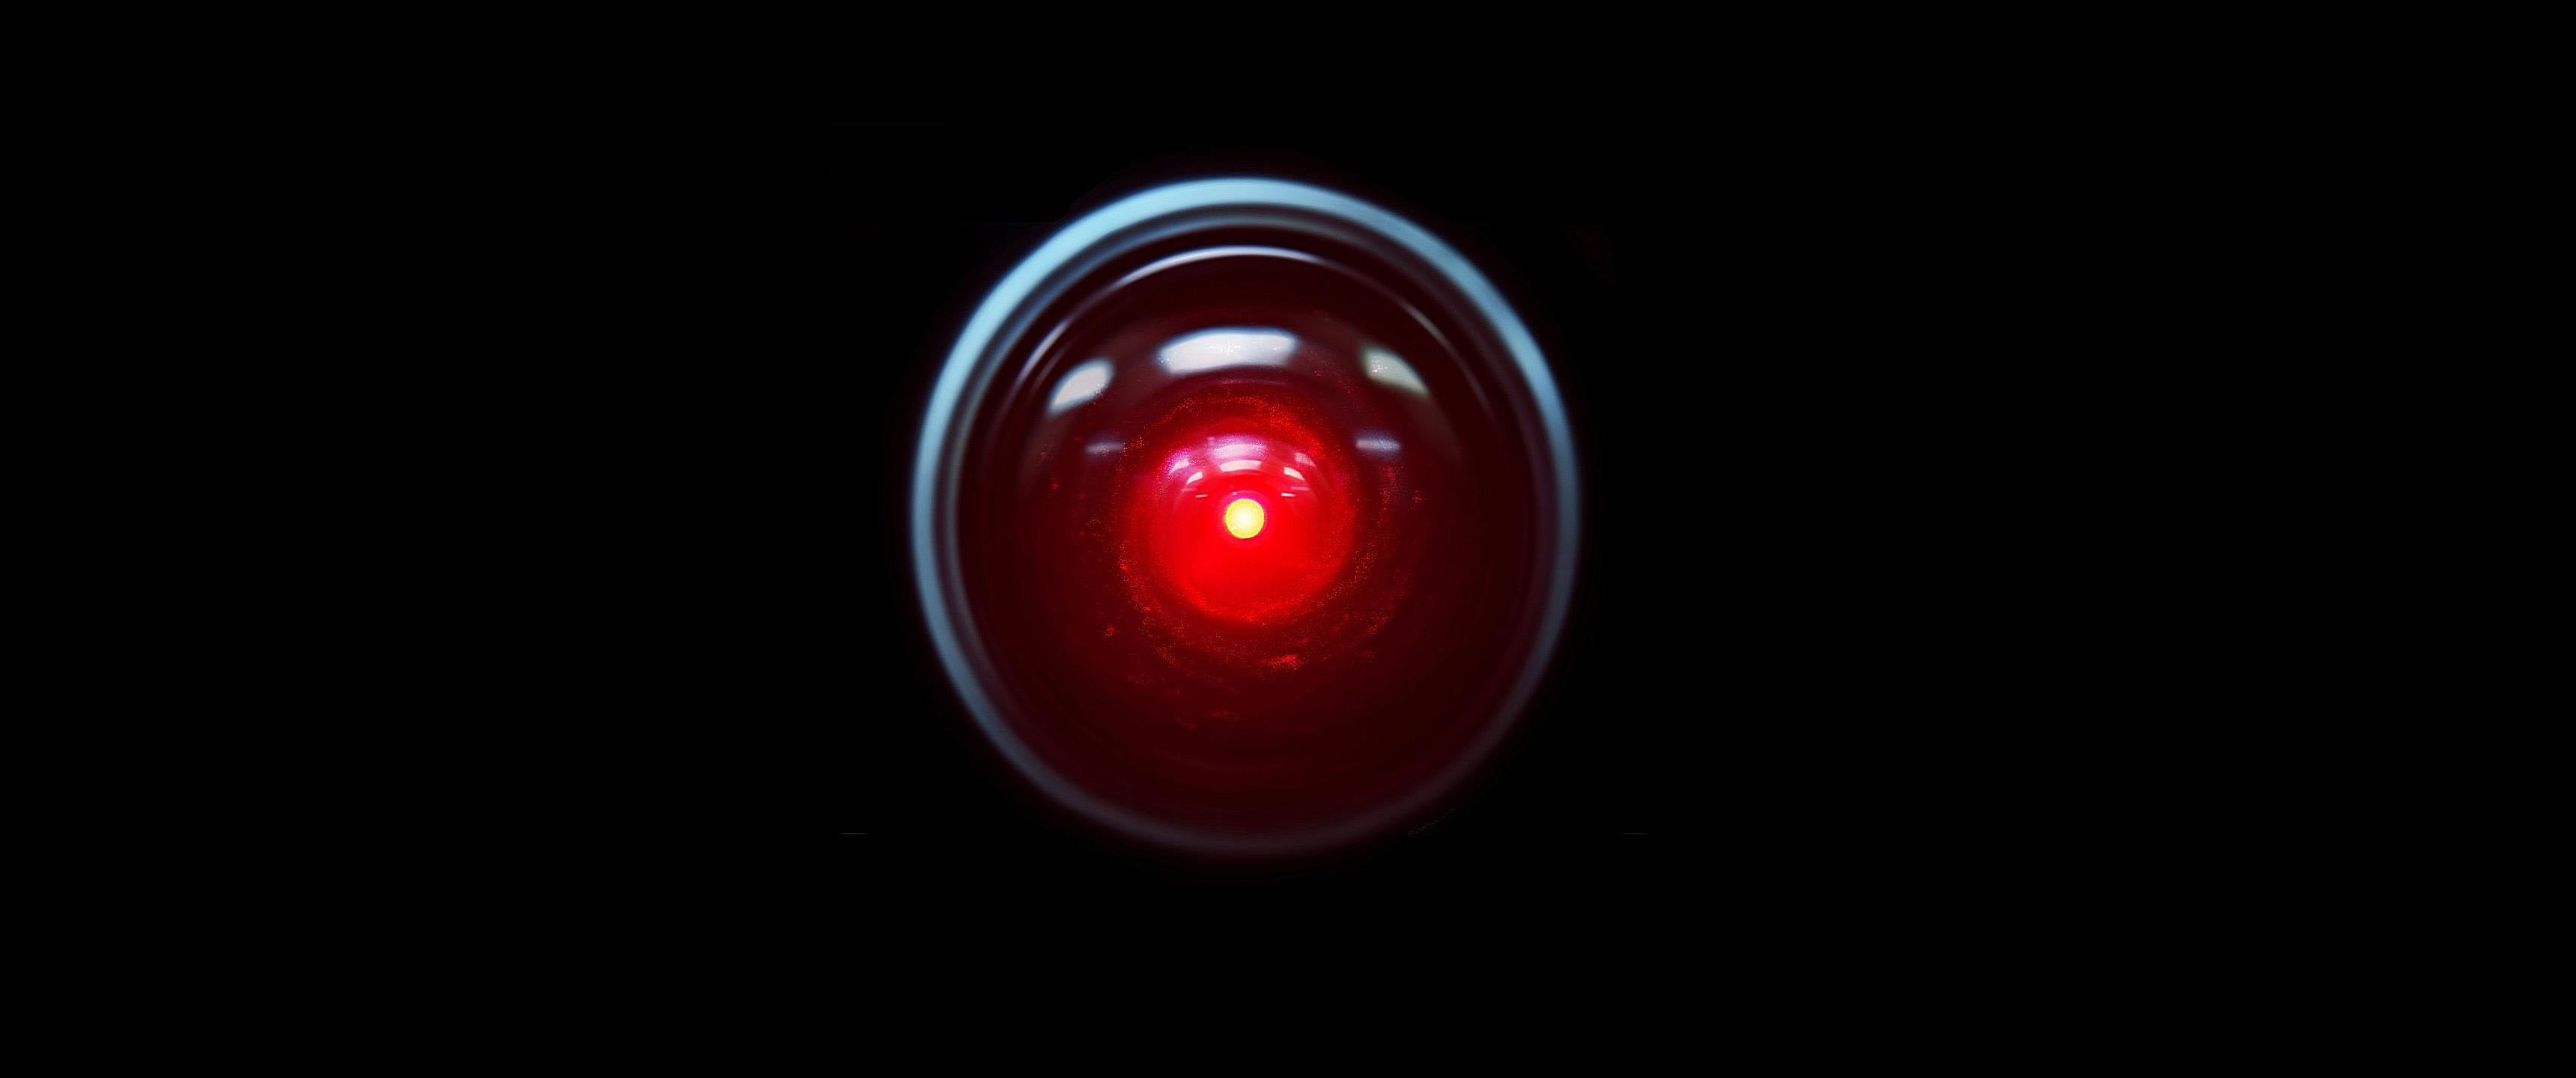 Hal 9000 Iphone Wallpaper 2001 A Space Odyssey Wallpaper 76 Images